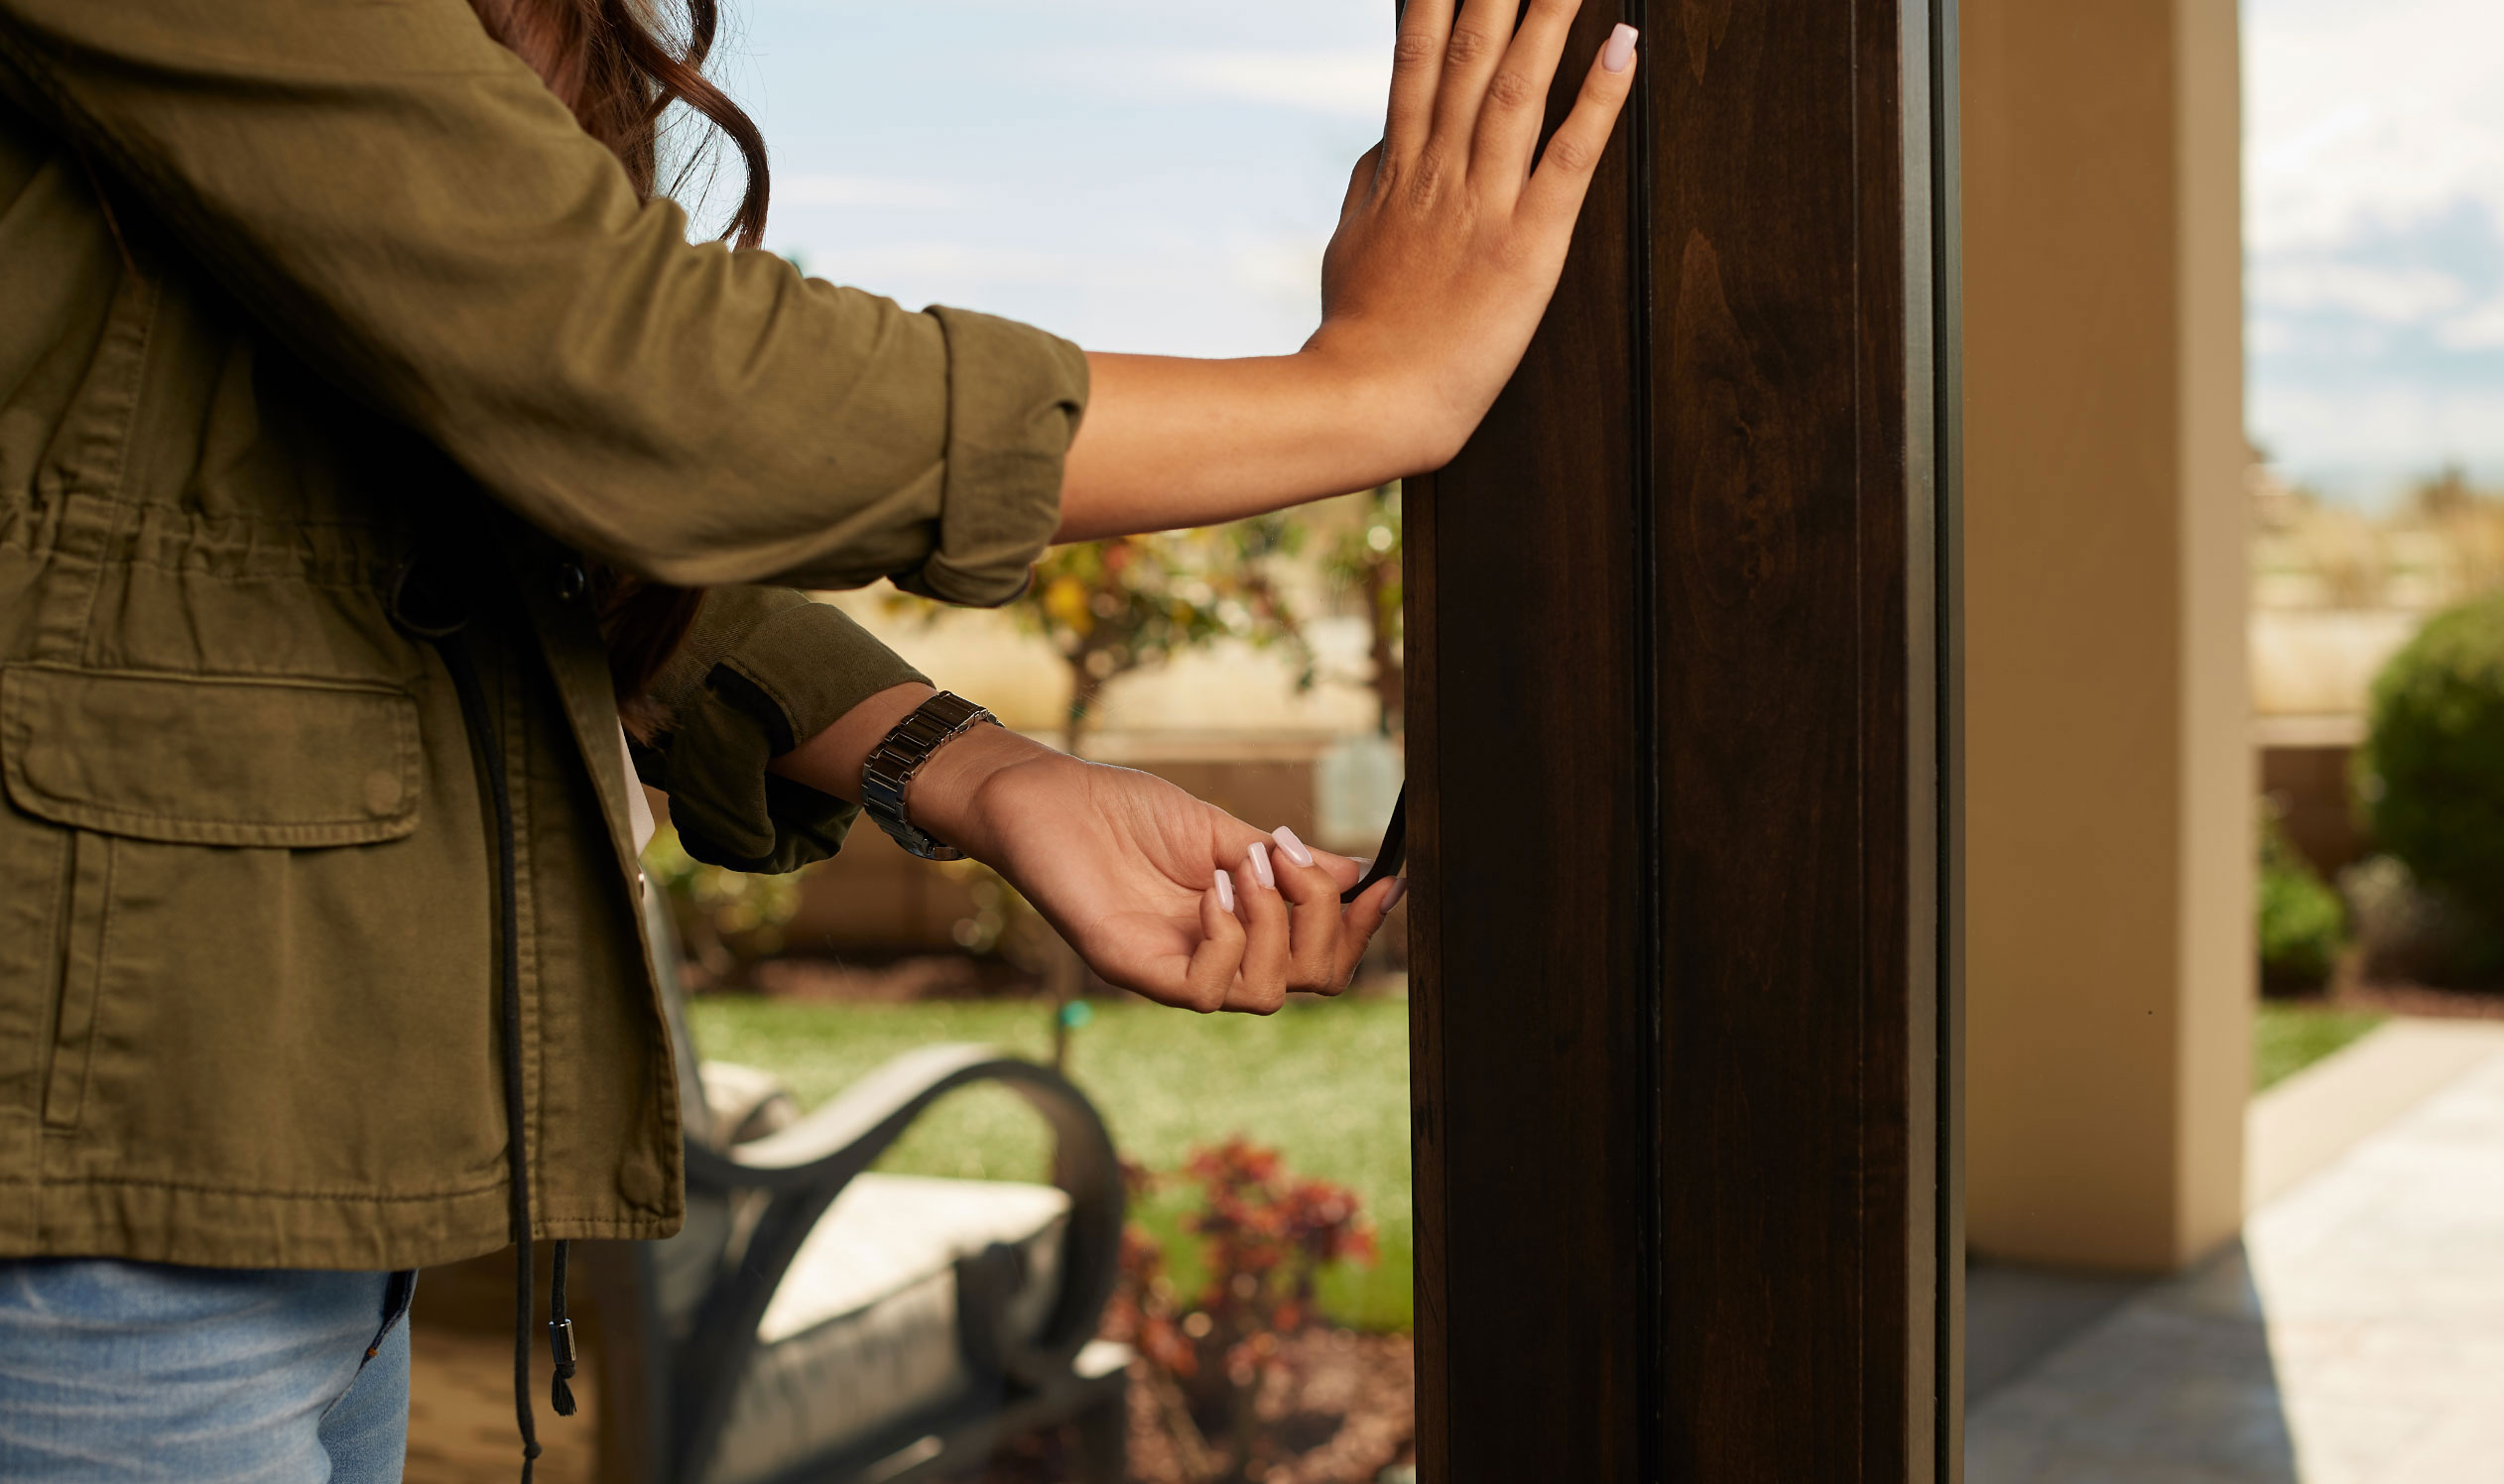 The Folding Door Store will install sliding glass patio doors which are easy to use and completely secure.